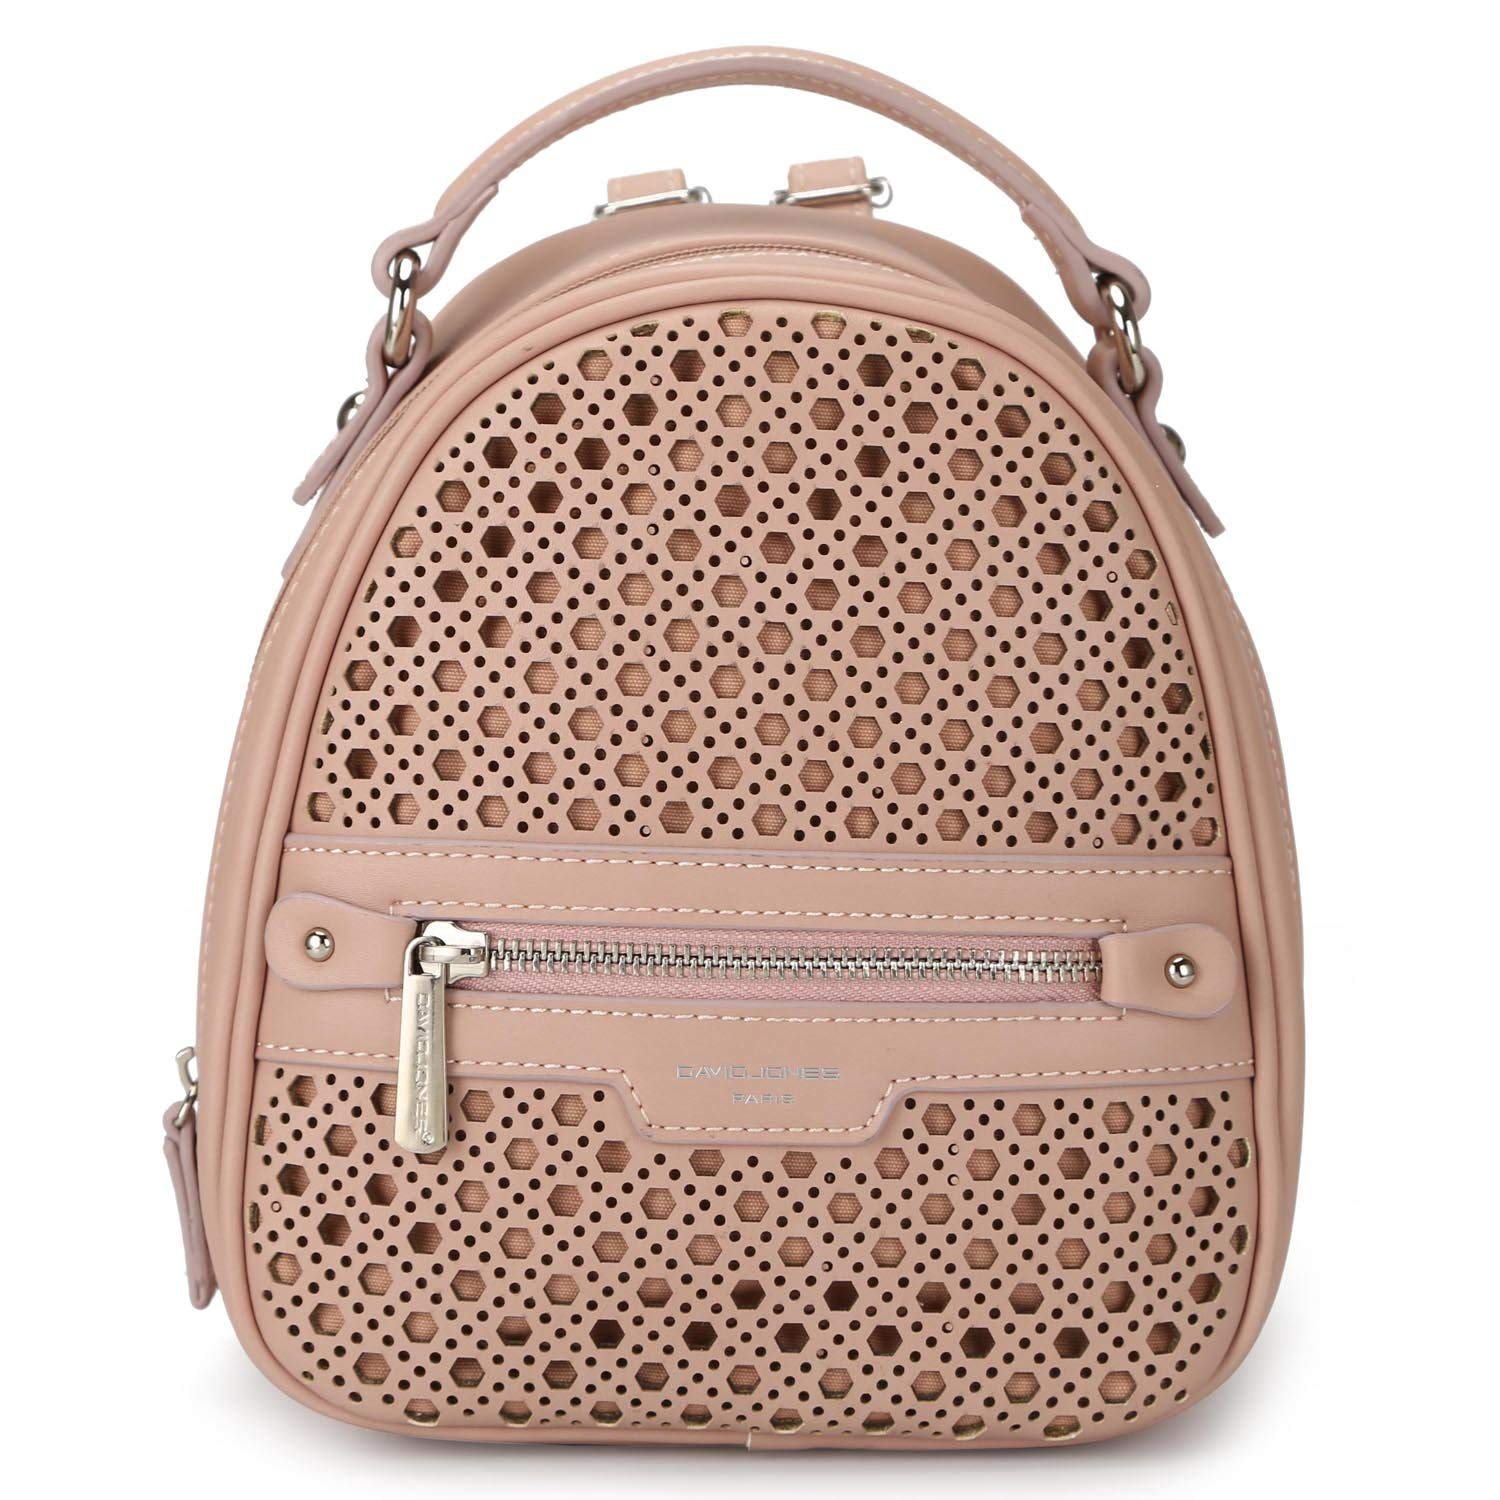 9f65f040b767 Get Quotations · DAVIDJONES Women s Faux Leather Mini Perforated Backpack  Shoulder Bag Travel Purse